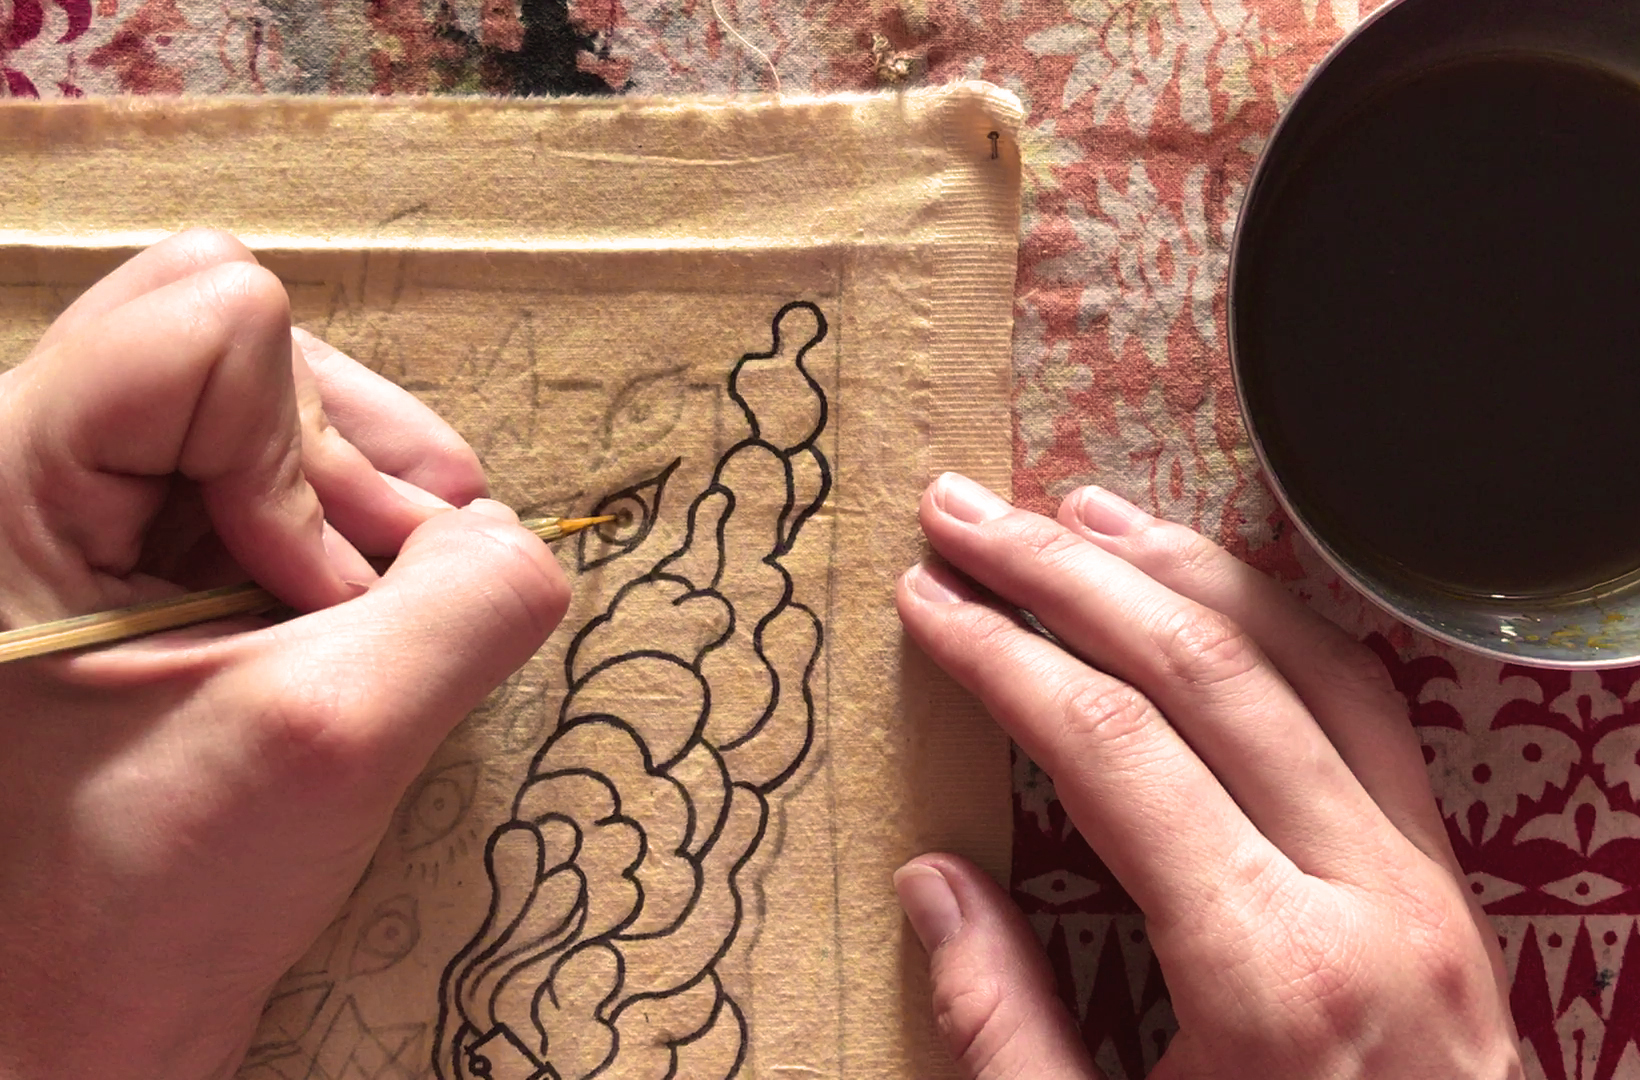 Drawing the outlines with a bamboo stick